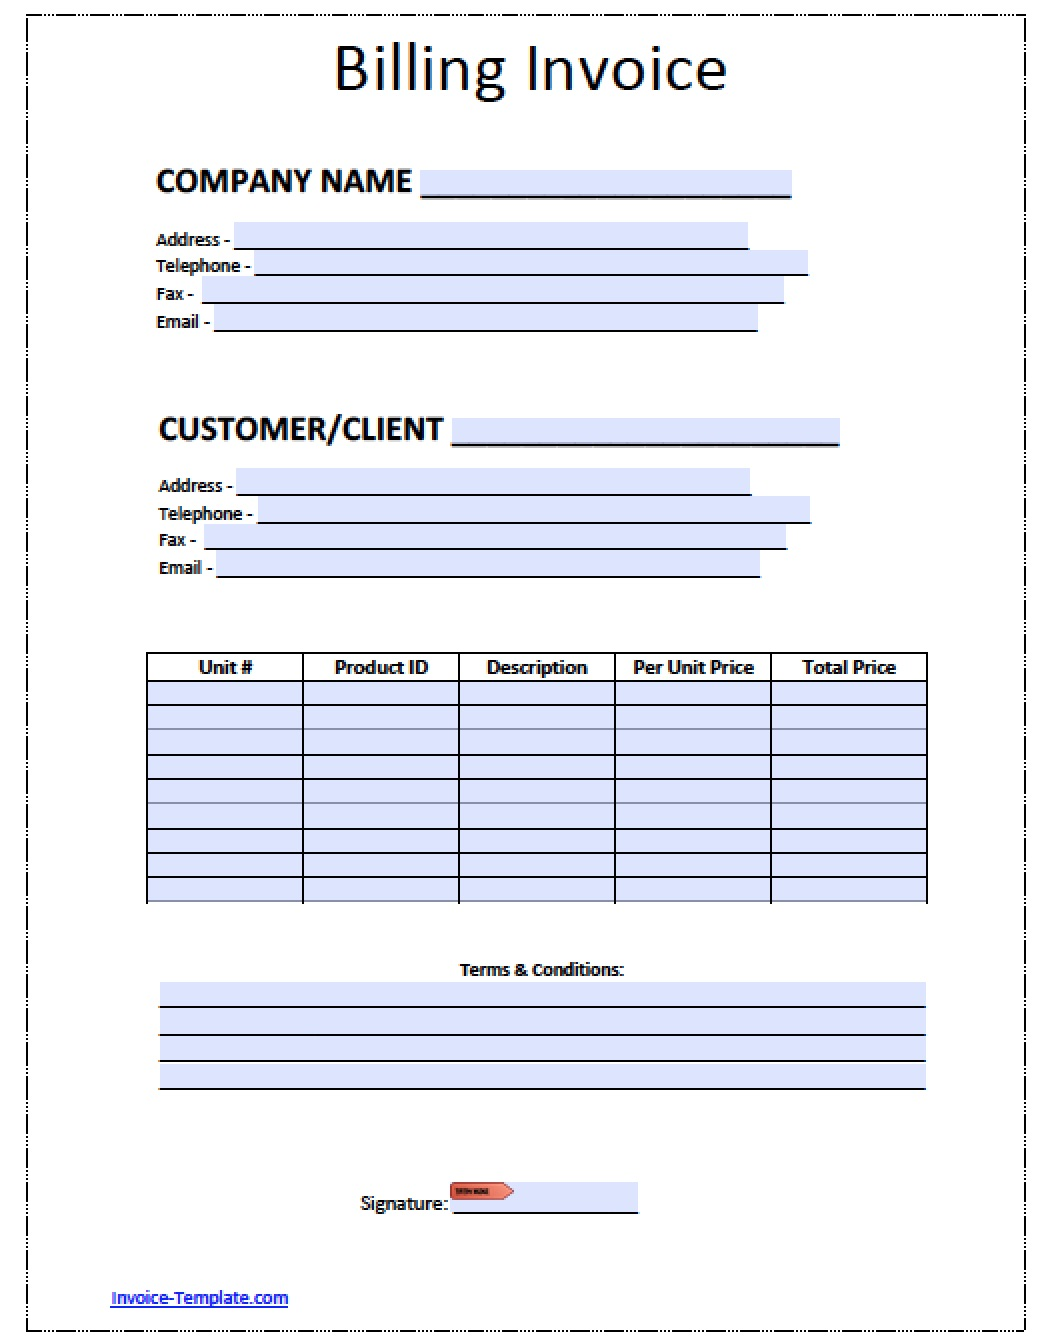 Free Billing Invoice Template Excel PDF Word Doc - Free download invoices for service business